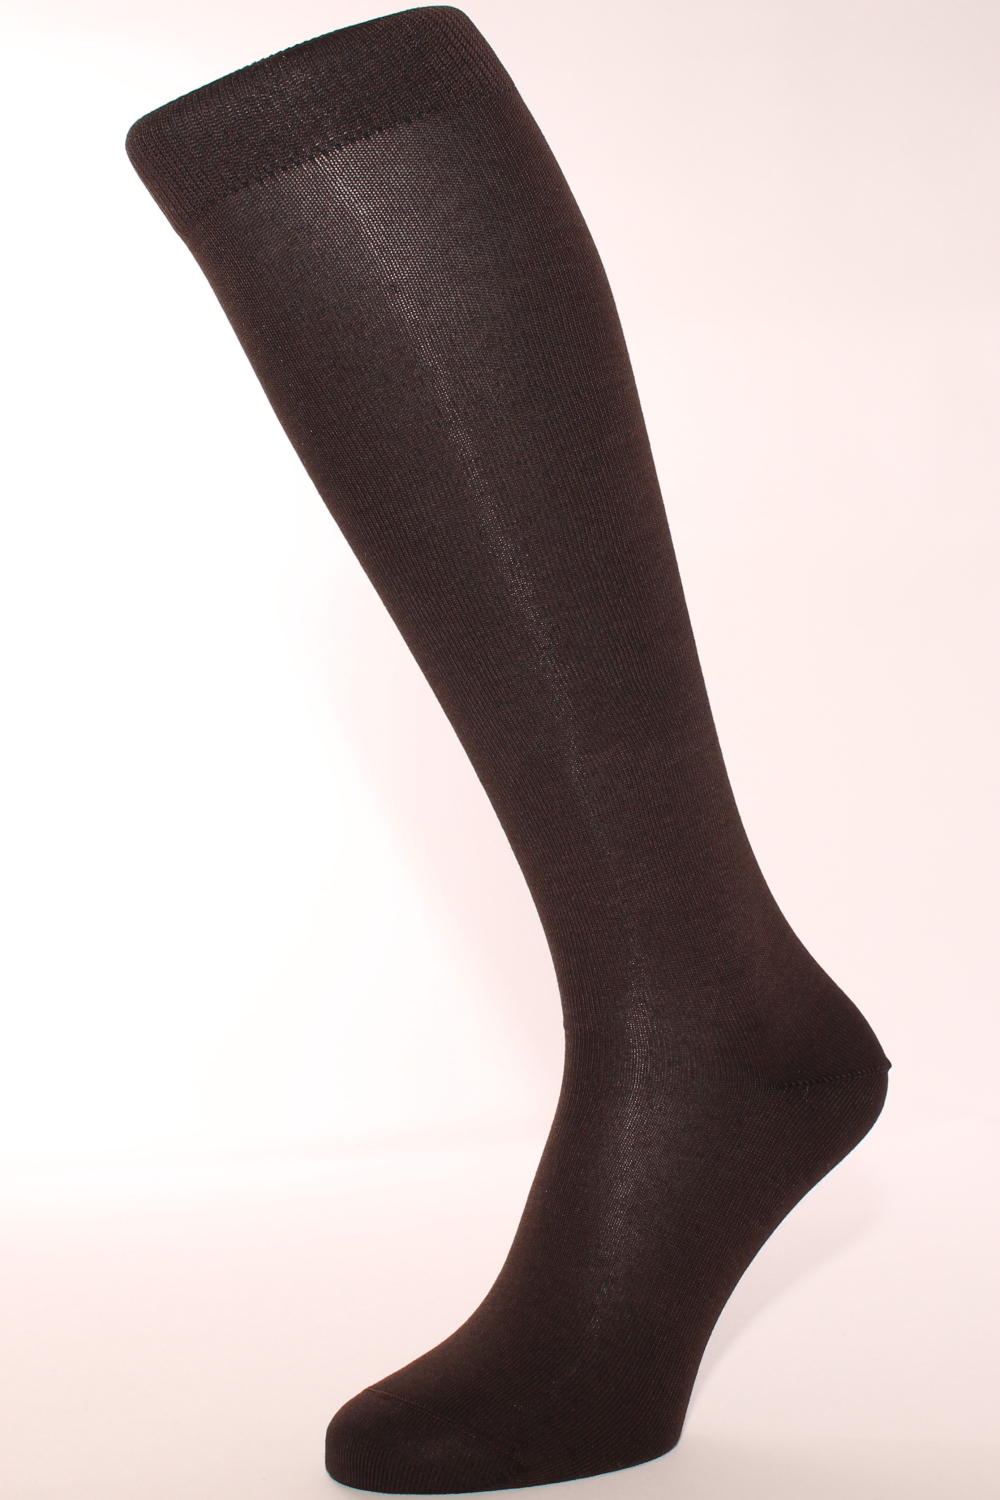 44fa964b7 Men s knee-high socks with cashmere interior - brown